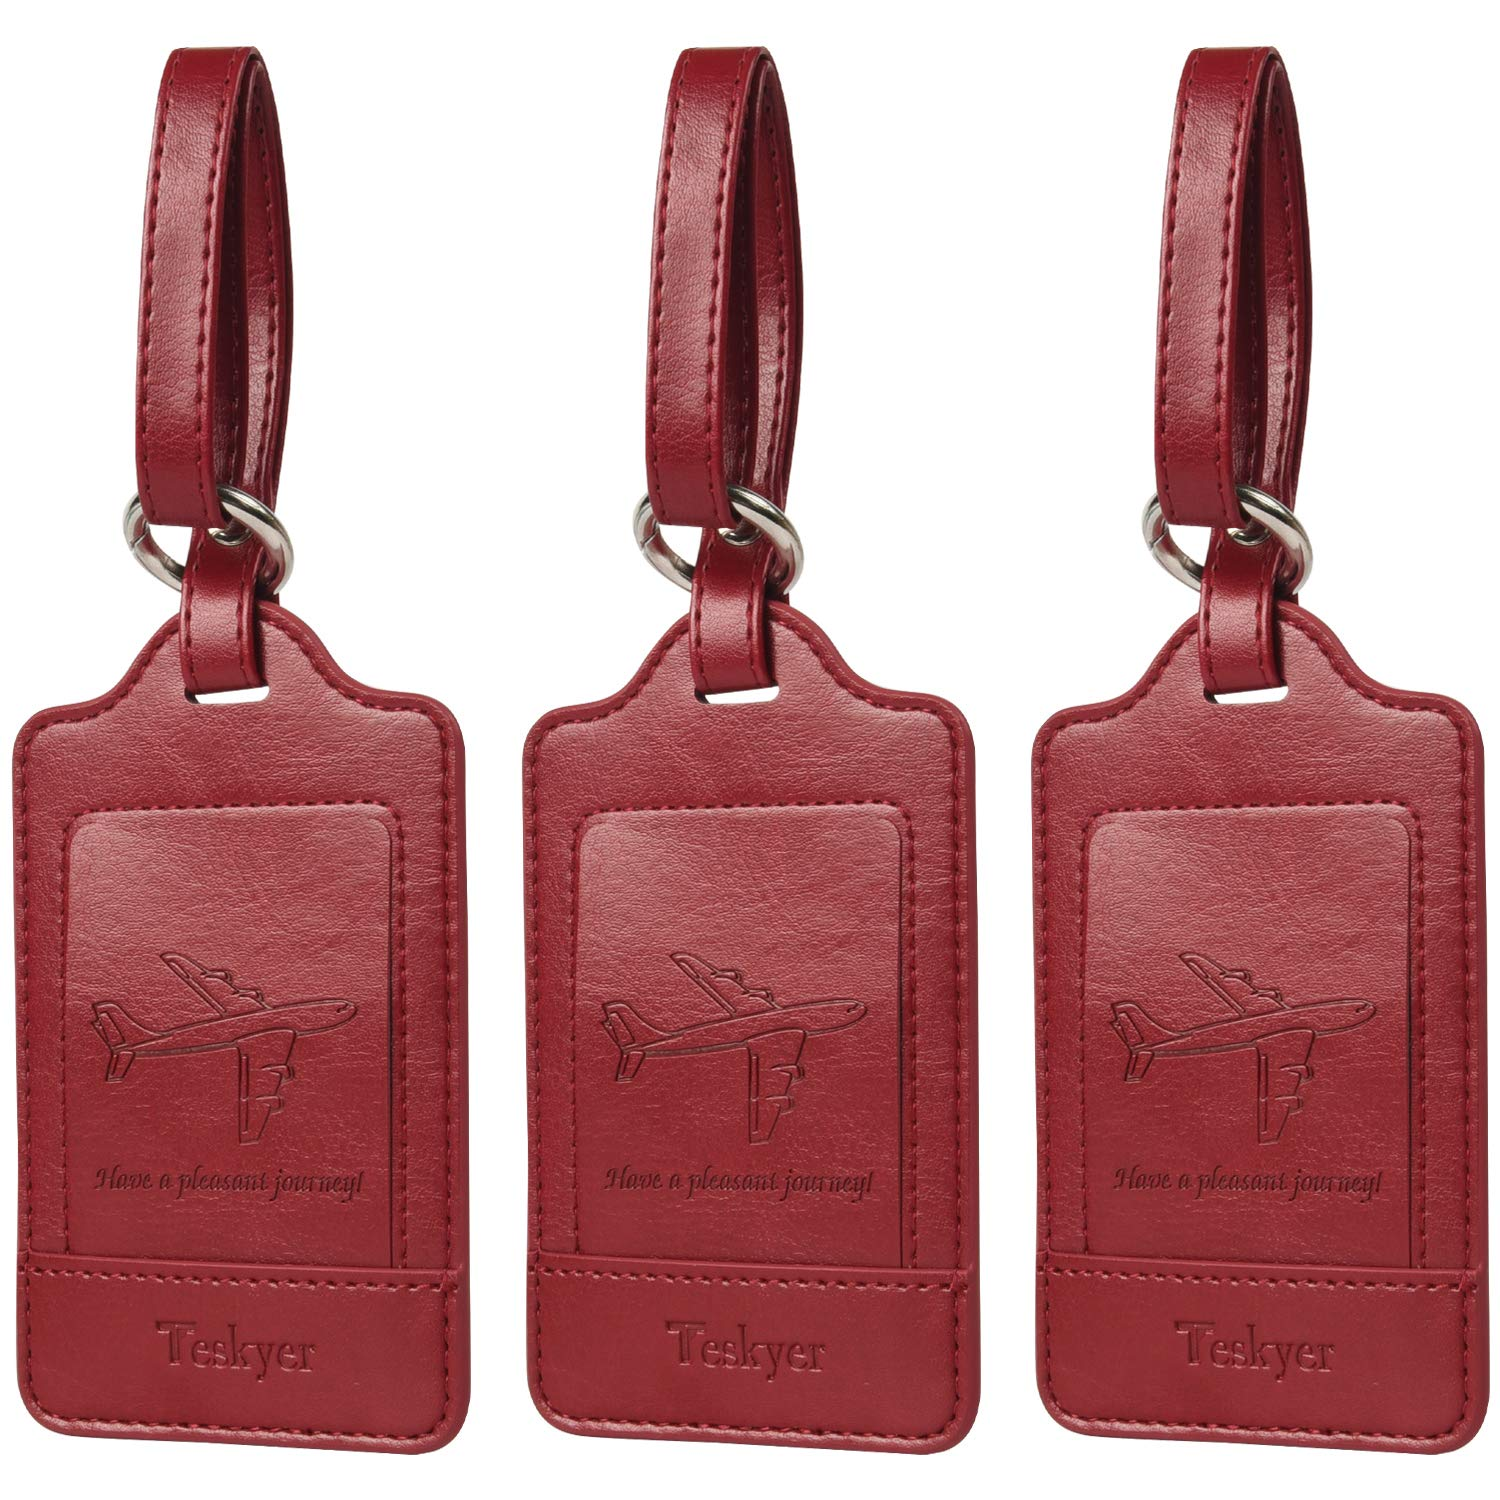 Luggage Tags, 3 Pack Teskyer Premium PU Leahter Luggage Tags Privacy Protection Travel Bag Labels Suitcase Tags-Red by Teskyer